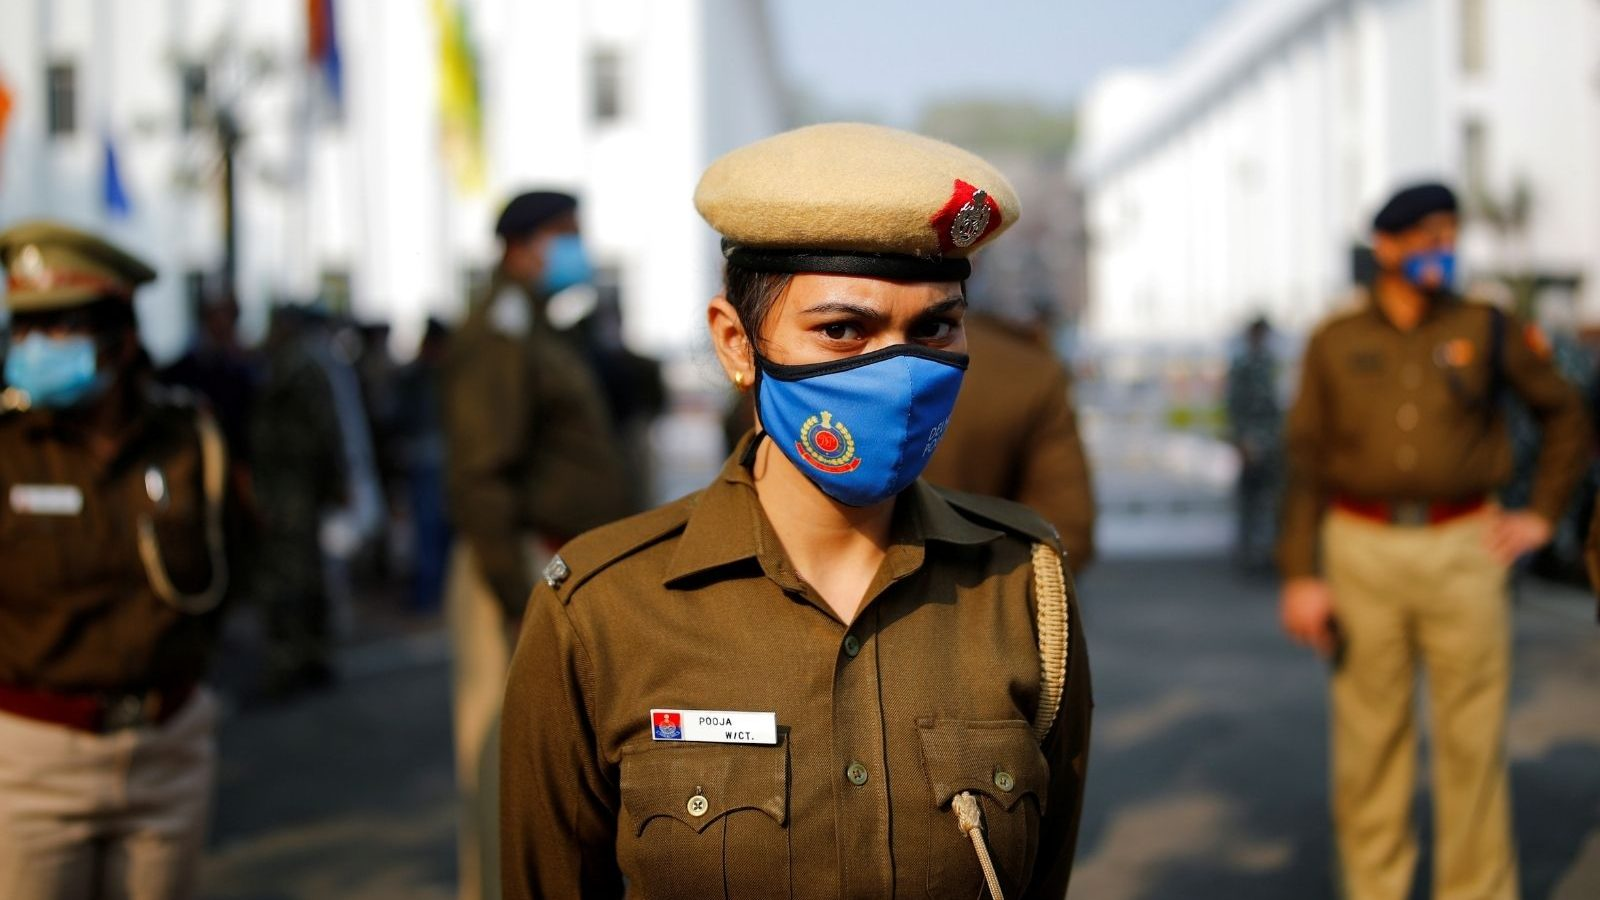 Delhi Riots: Court Drops Arson Charges Against 10, Says Police Covering Flaw